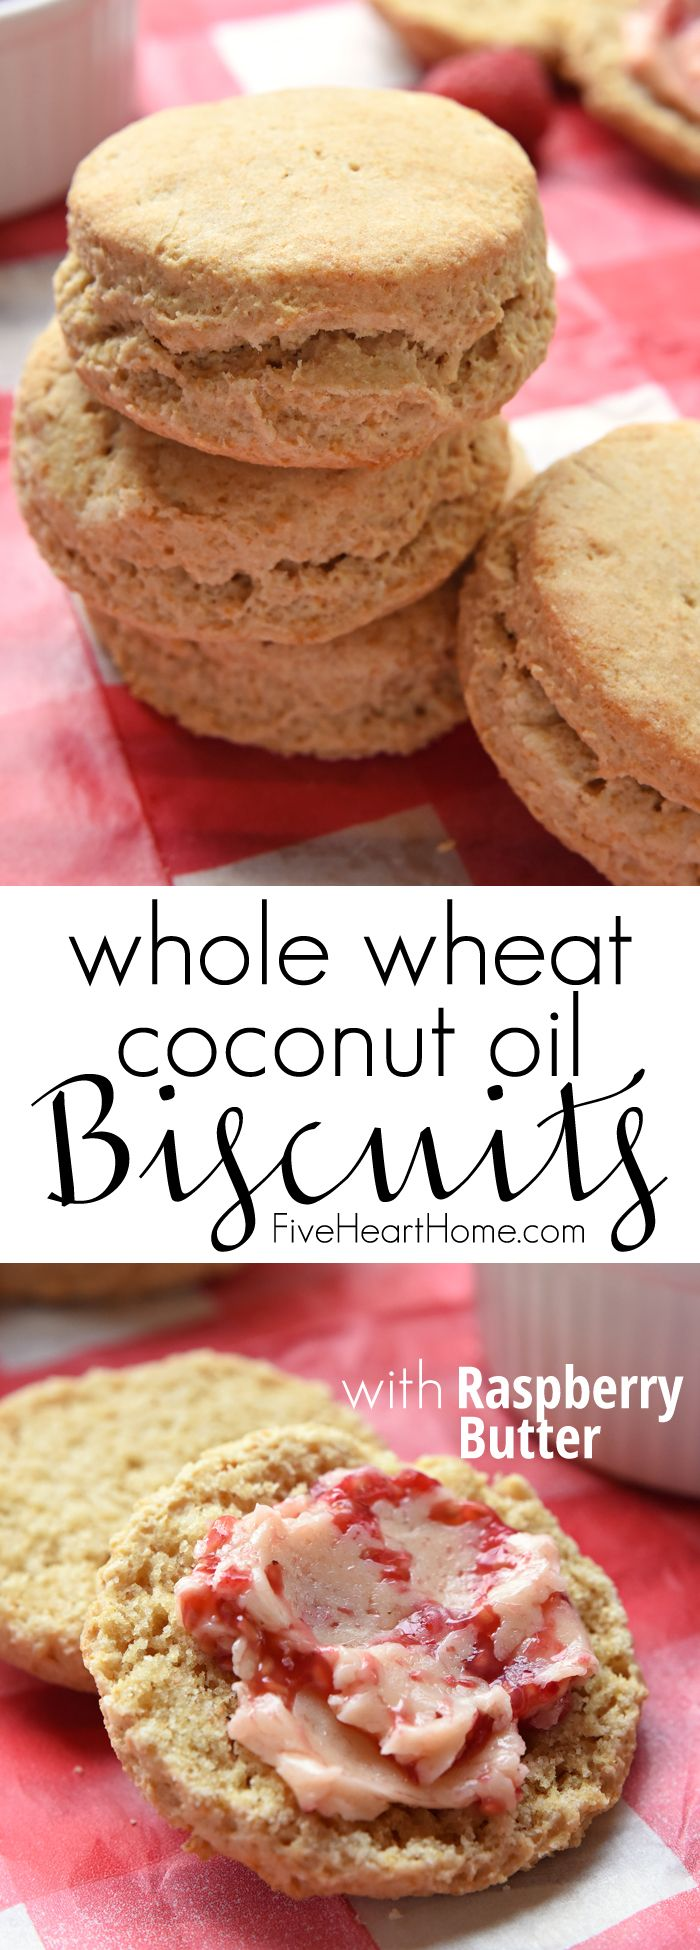 Fluffy Whole Wheat Coconut Oil Biscuits with Raspberry Butter ~ light, flaky, and wholesome, thanks to 100% whole wheat flour and nourishing coconut oil. Top them with honey-sweetened Raspberry Butter for a delicious breakfast treat!   FiveHeartHome.com